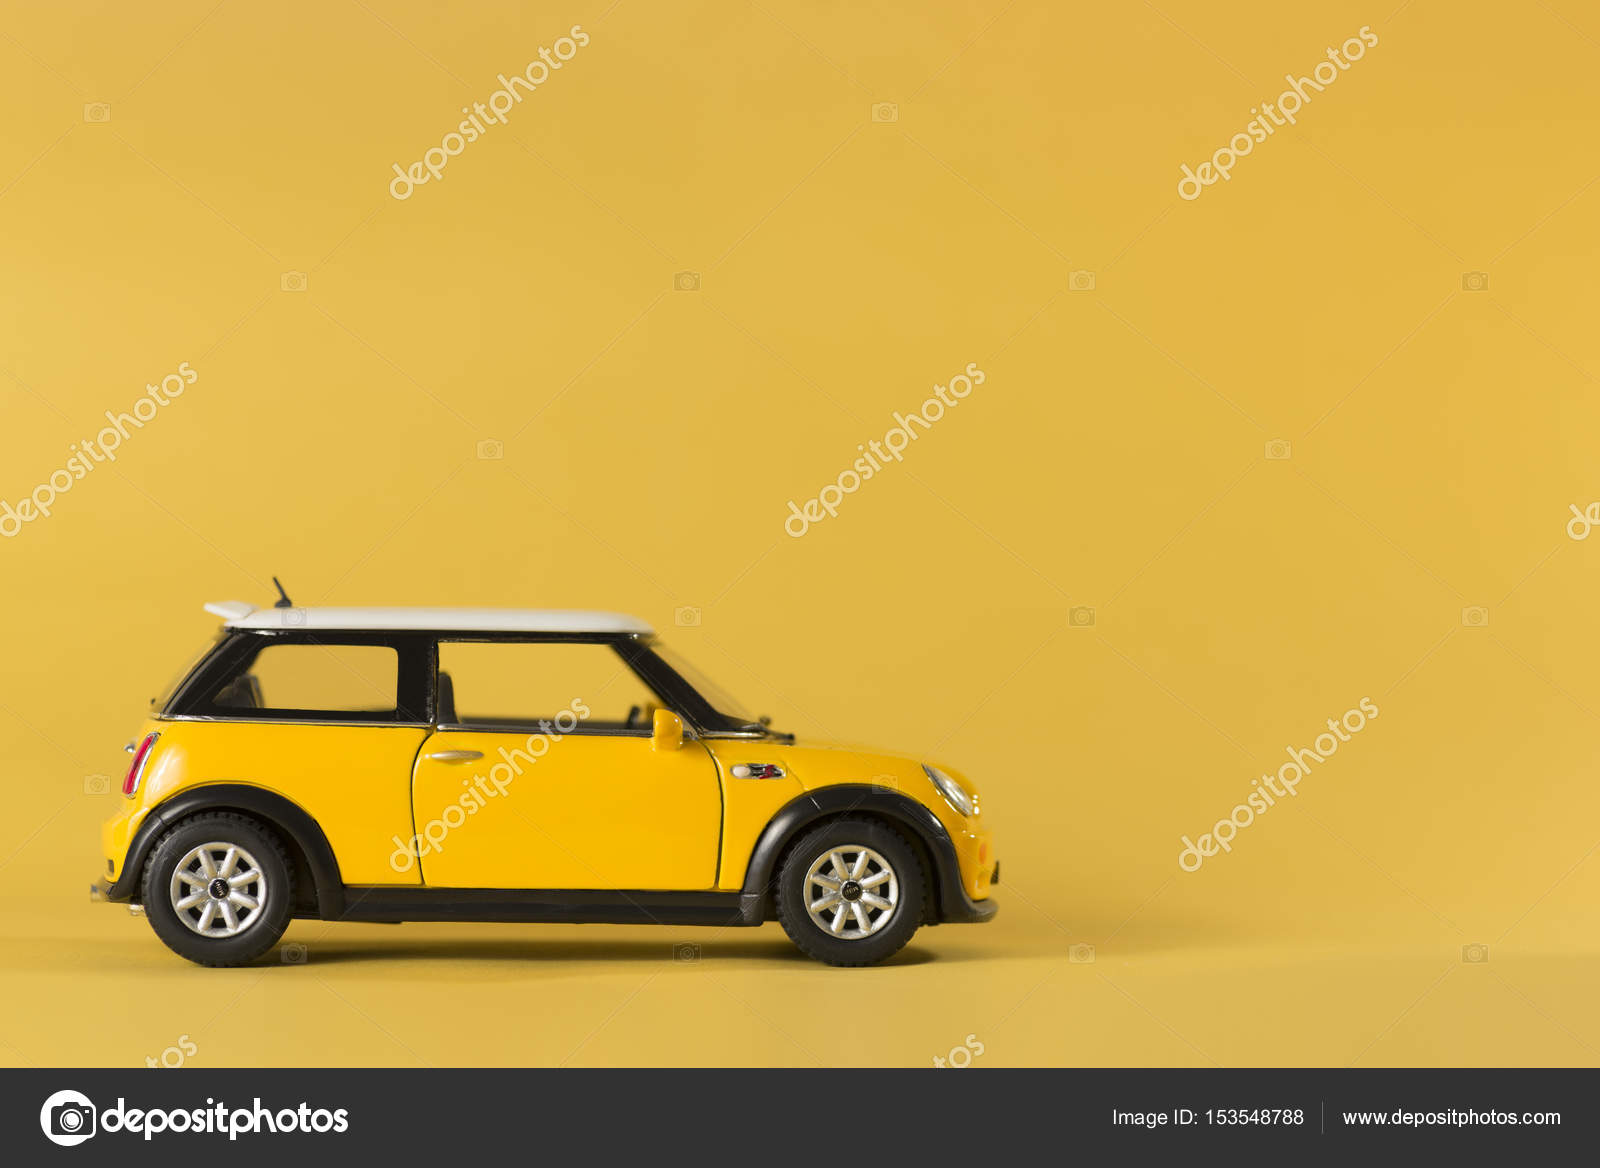 Mini Cooper S Toy Car Stock Editorial Photo Casarda 153548788